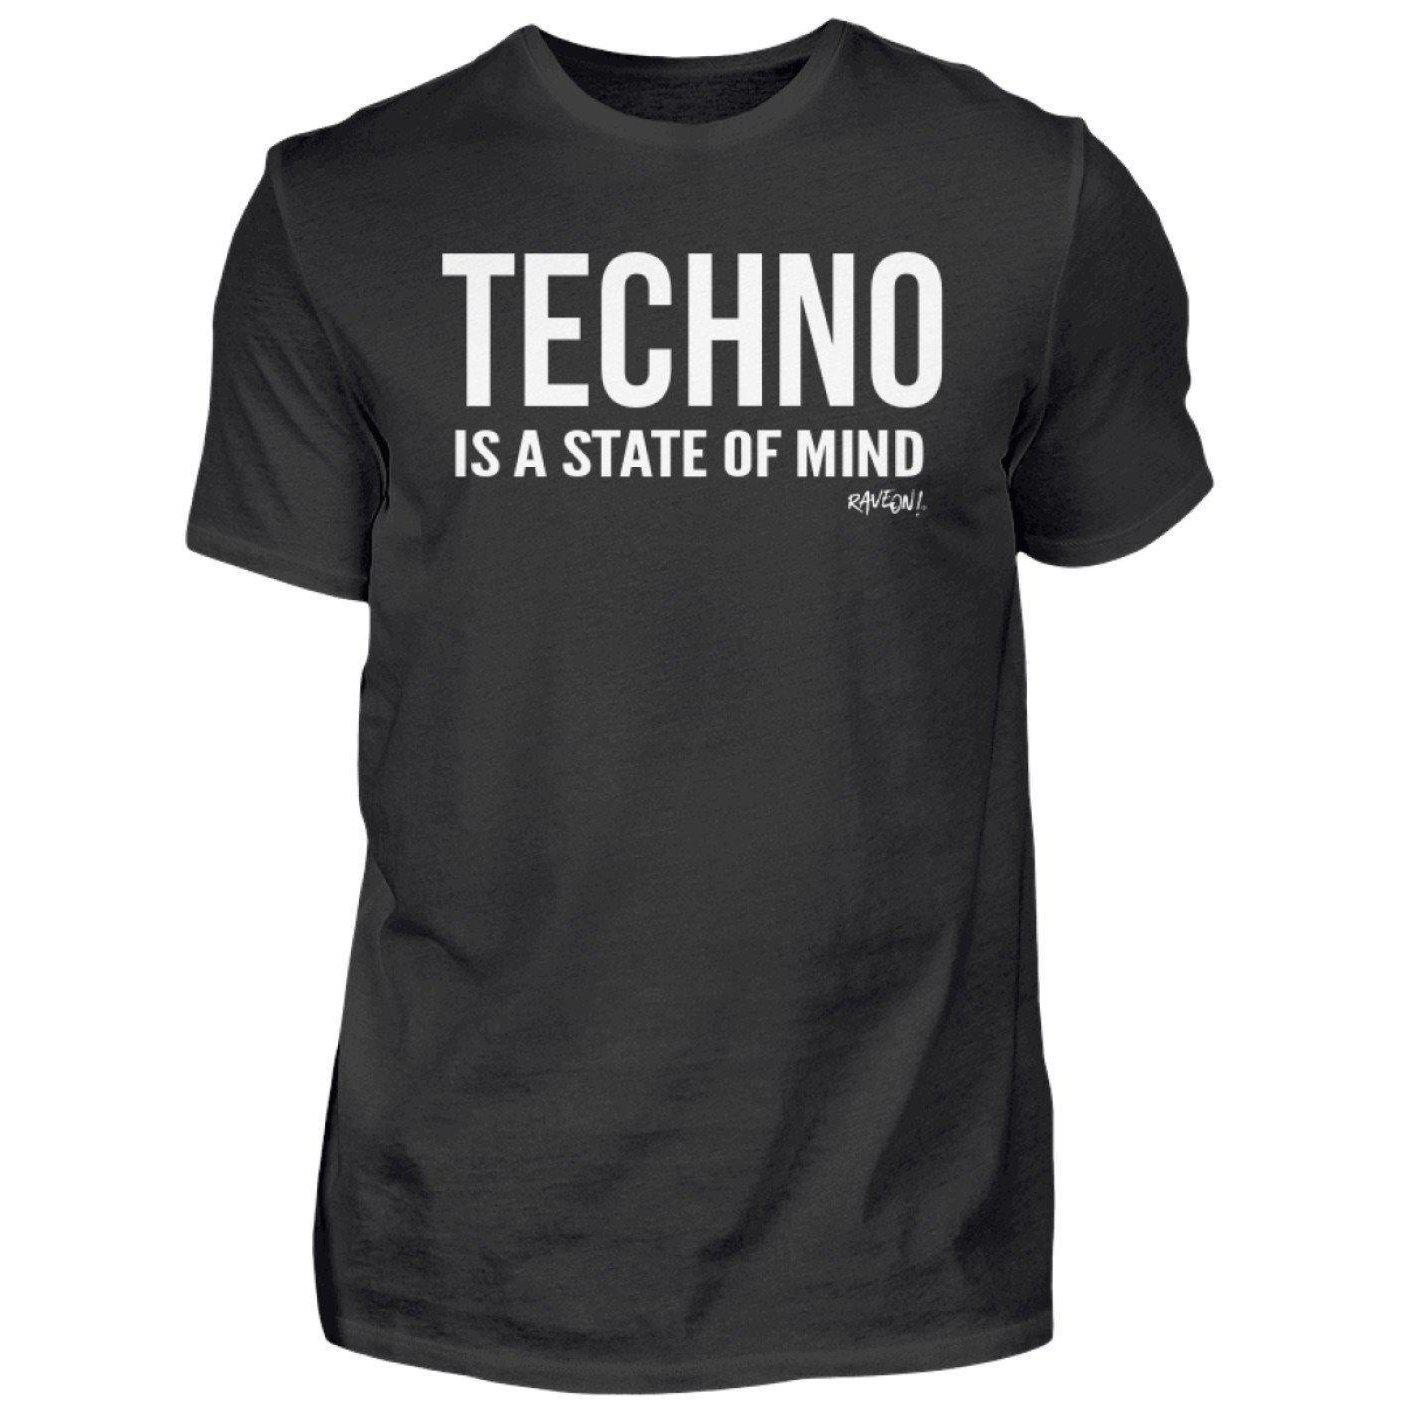 TECHNO IS A STATE OF MIND - Rave On!® - Men Shirt Men Basic T-Shirt S - Rave On!® the club & techno scene shop for cool young fashion streetwear style & fashion outfits + sexy festival 420 stuff